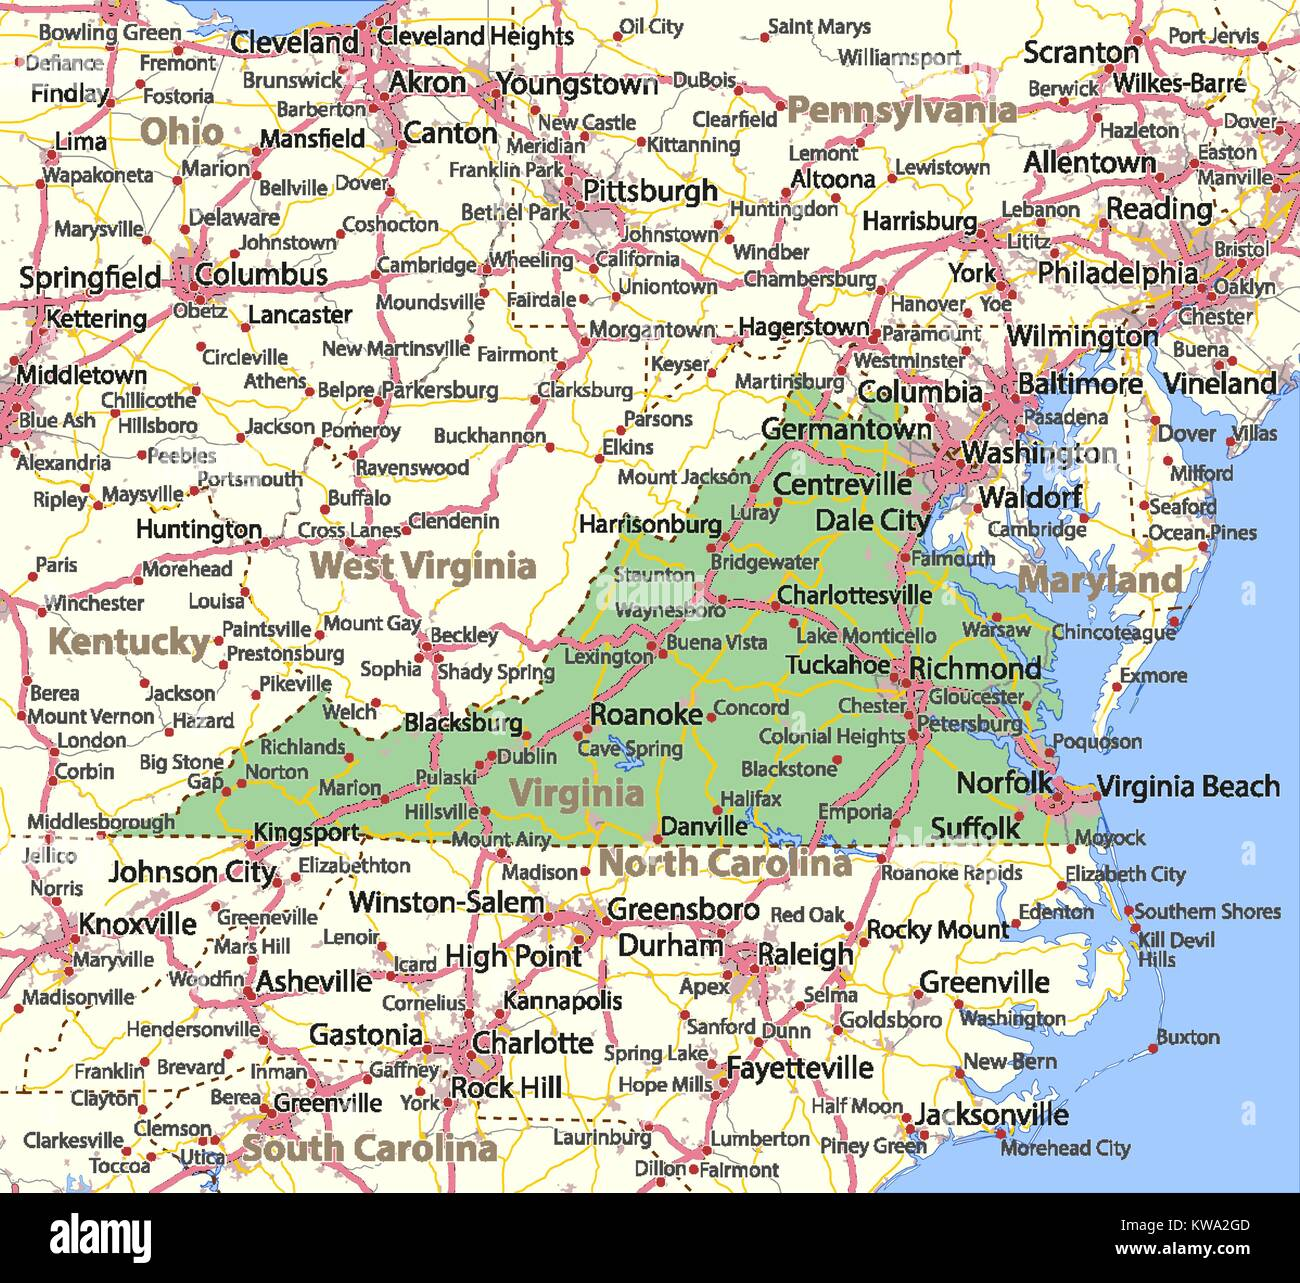 Map Of Virginia Roads.Map Of Virginia Shows Country Borders Urban Areas Place Names